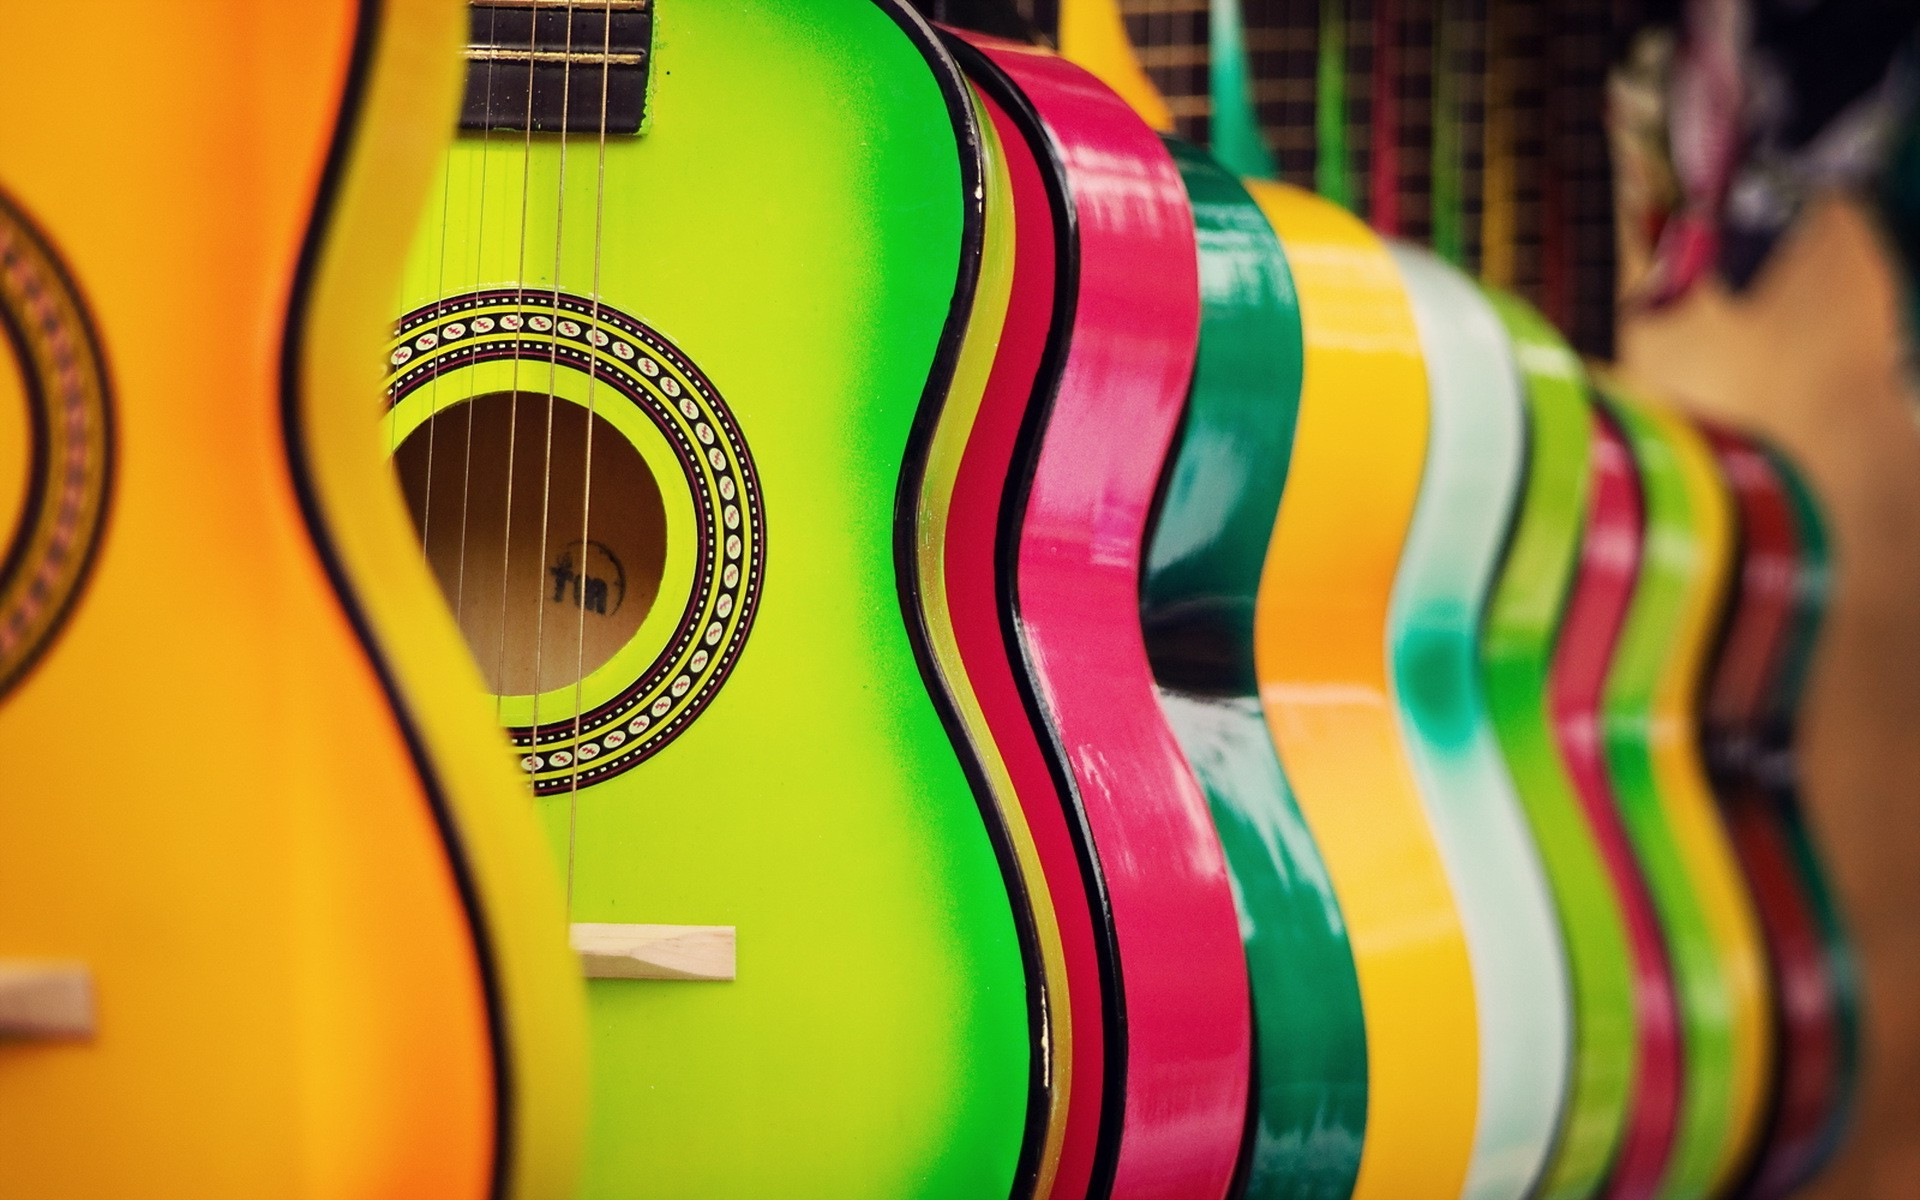 colorful guitar hd music 4k wallpapers images